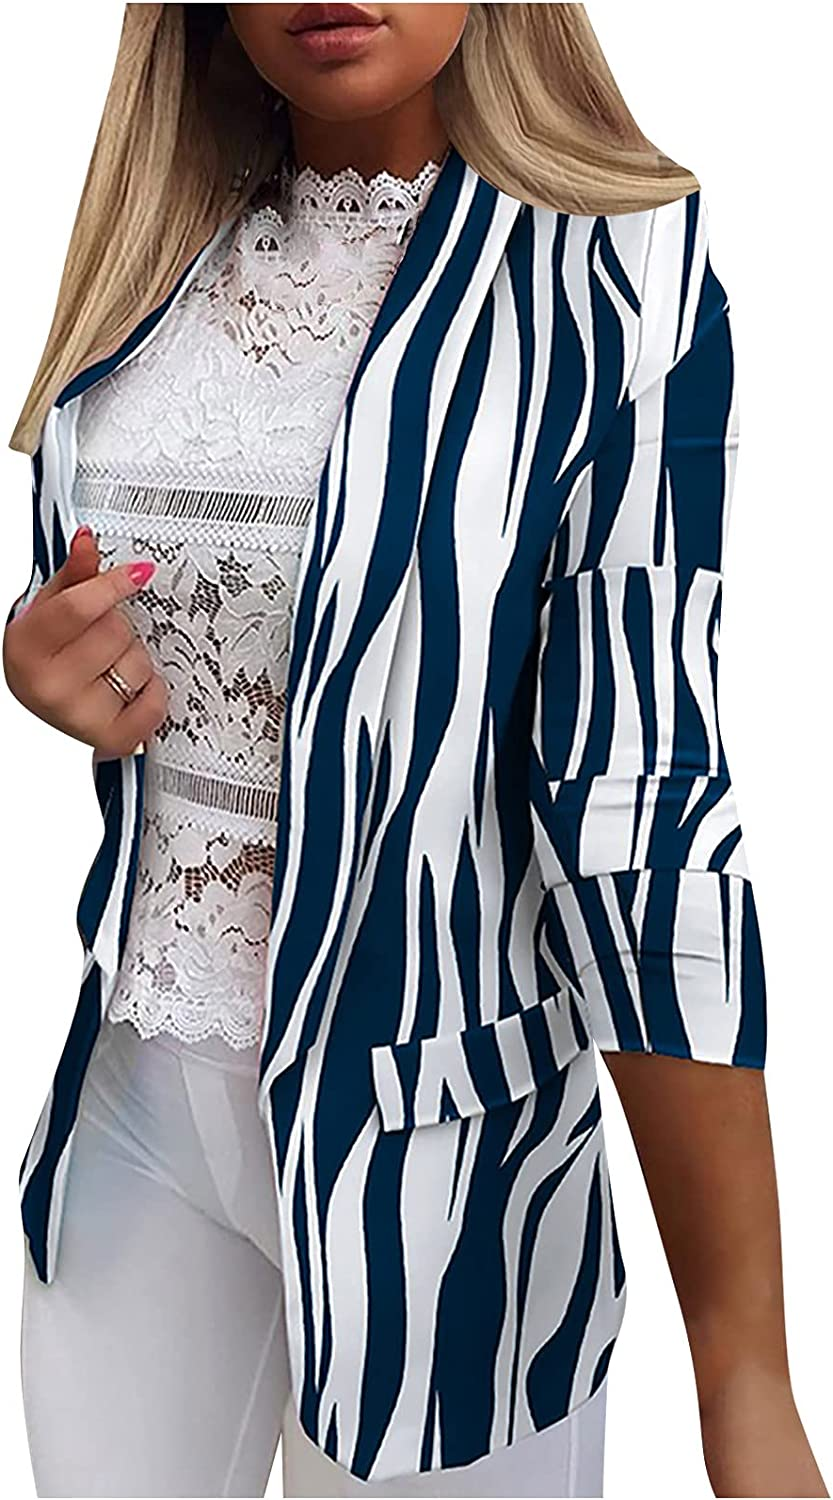 Blazers for Women Fashion free Year-end gift shipping Casual Coats Work Long Jackets Office